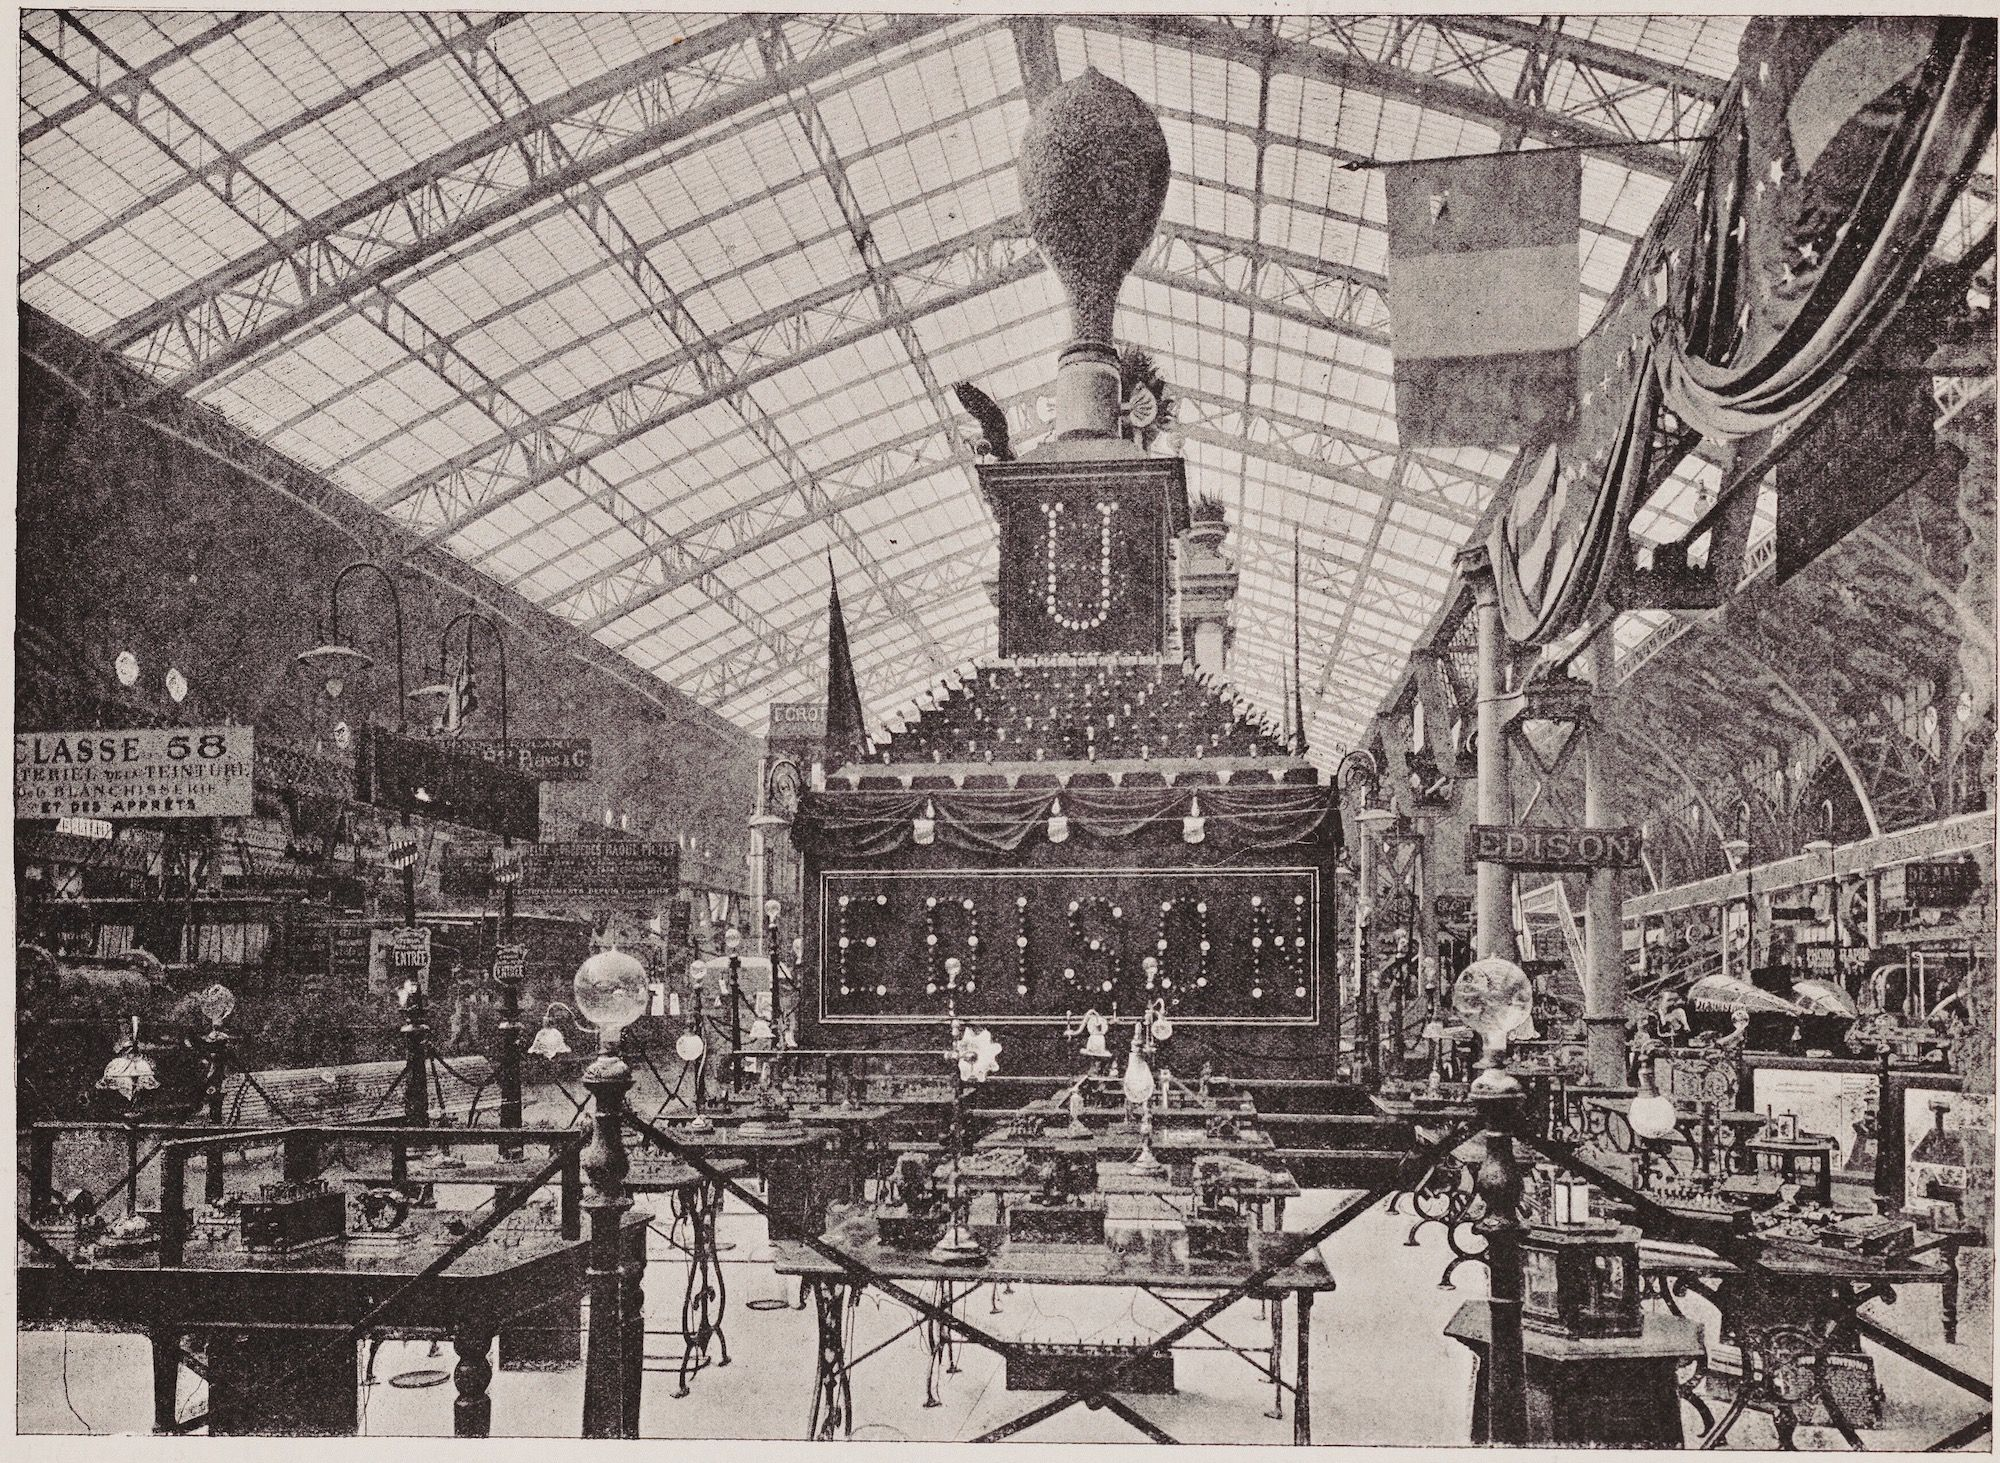 Thomas Edison's displays and demonstration area at the Exposition Universelle world's fair held in Paris from May 6 to October 31, 1889.